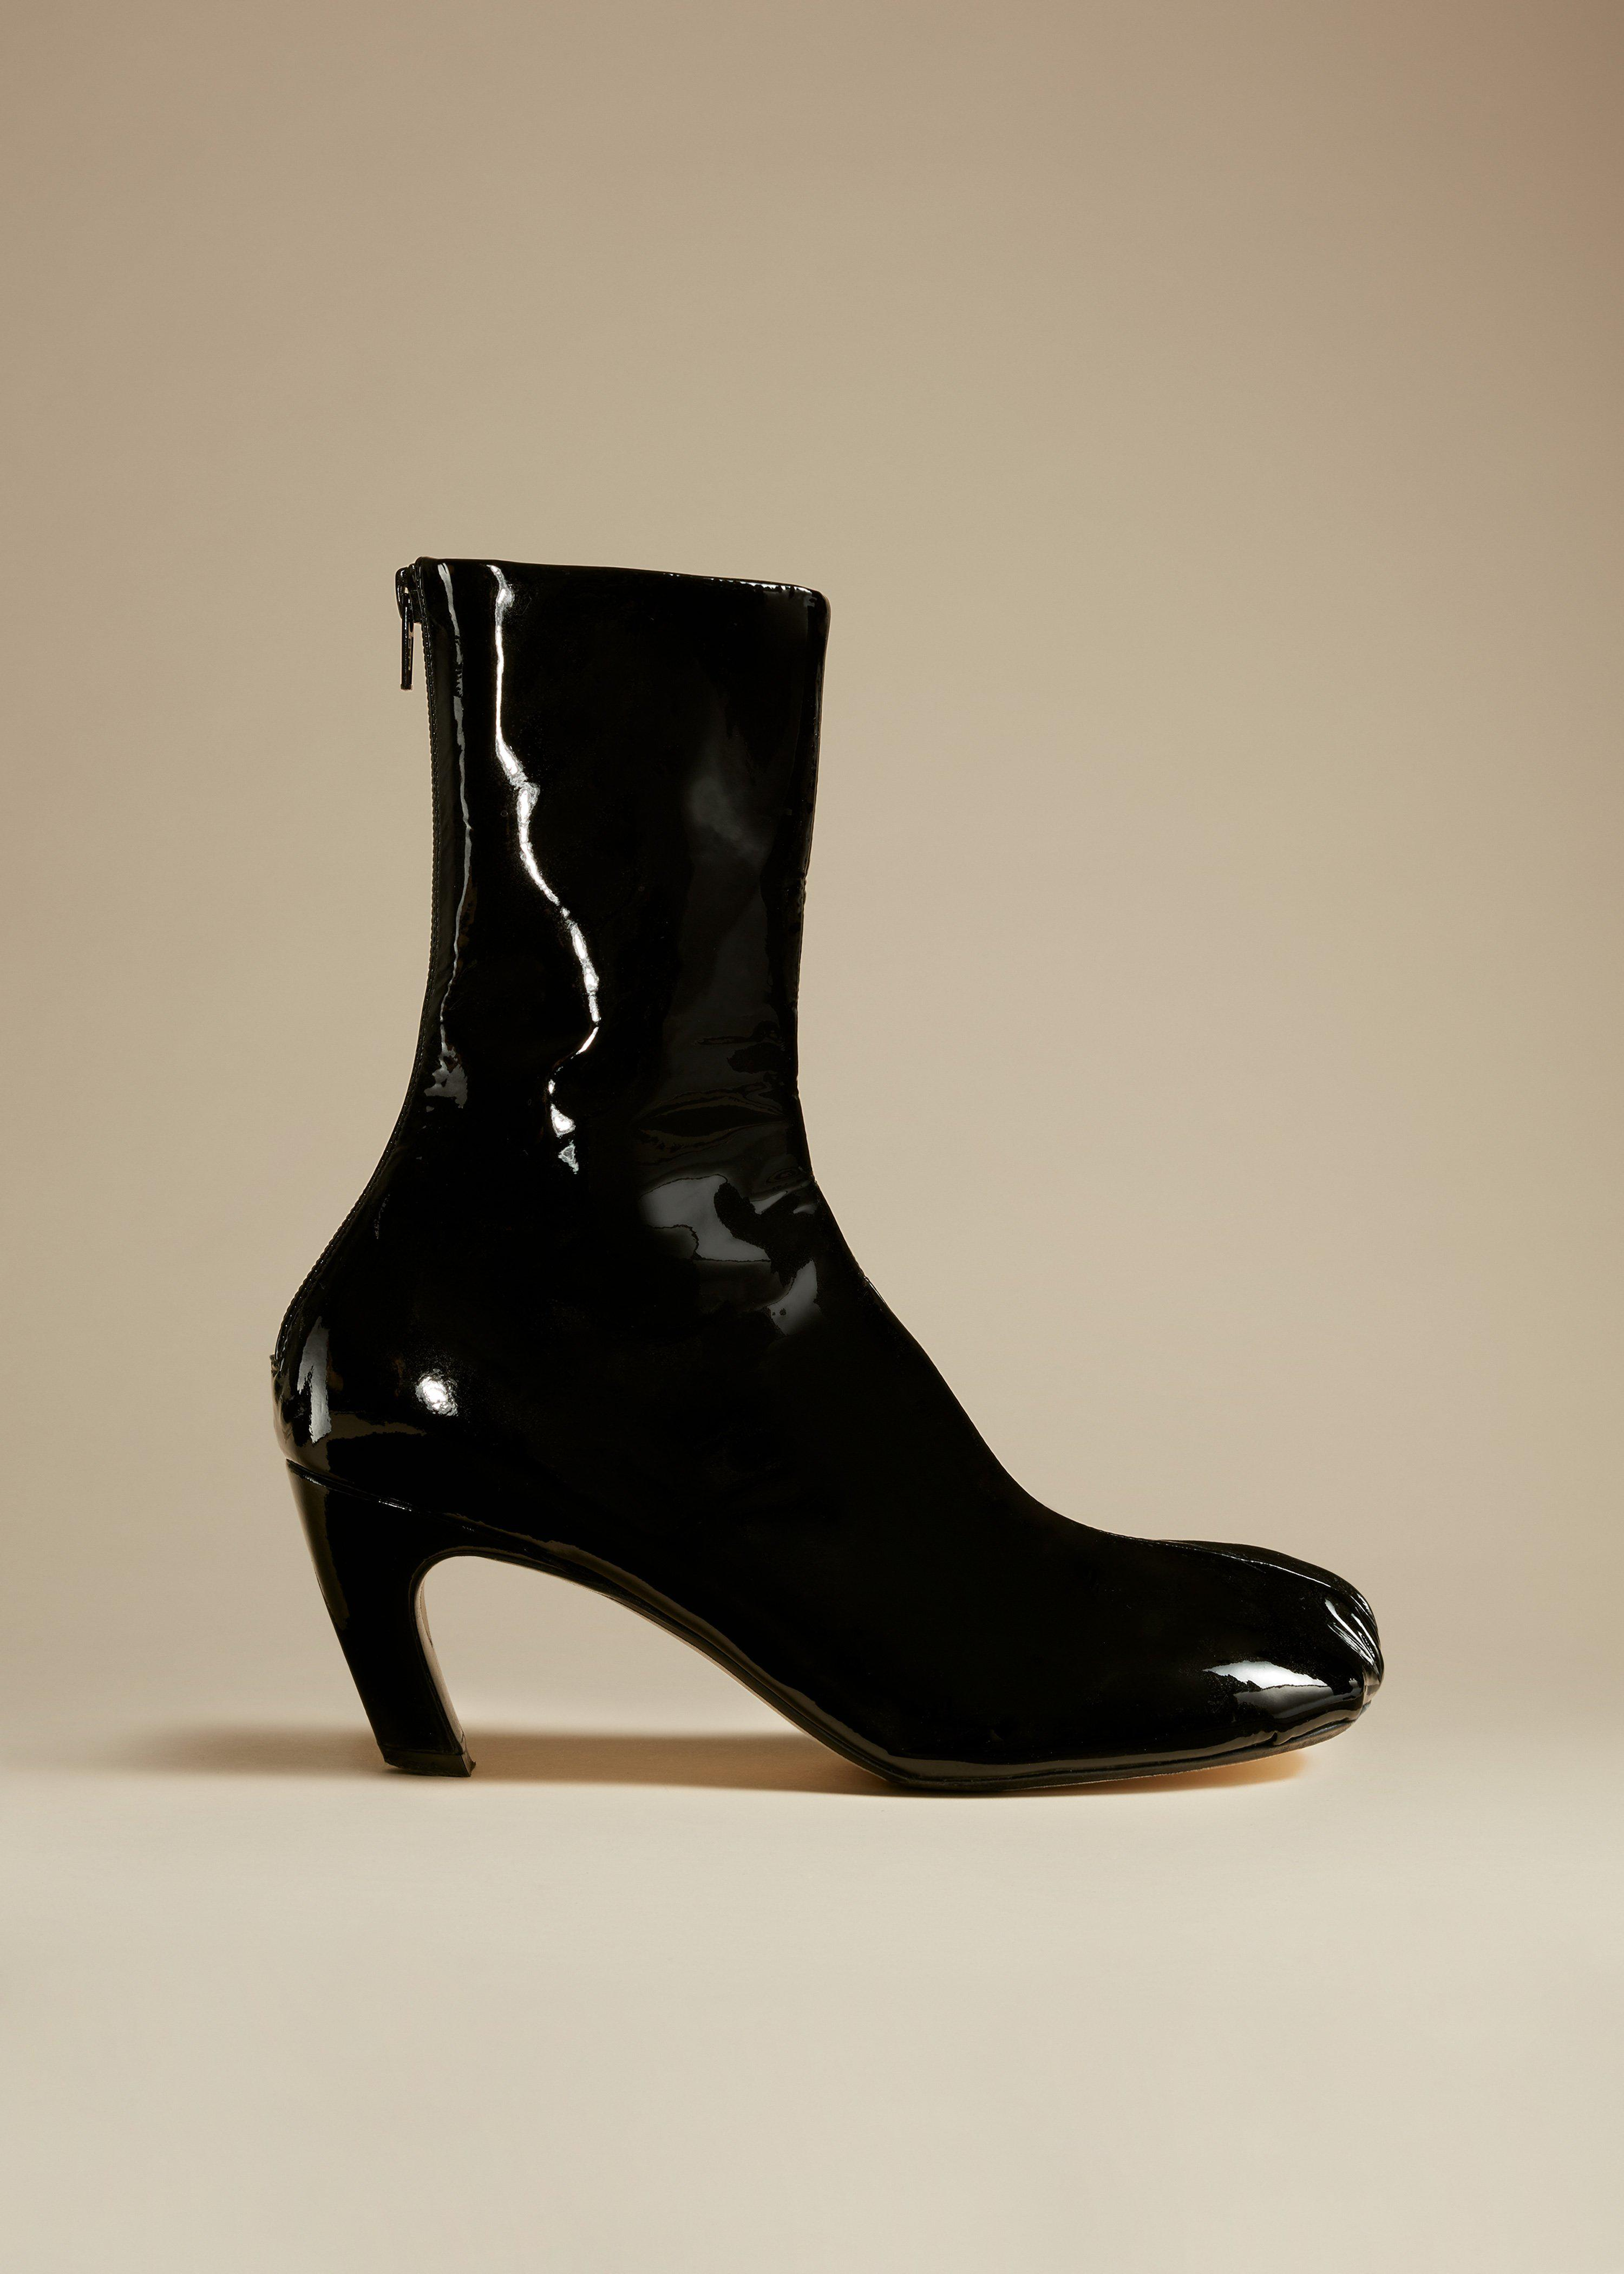 The Normandy Boot in Black Patent Leather